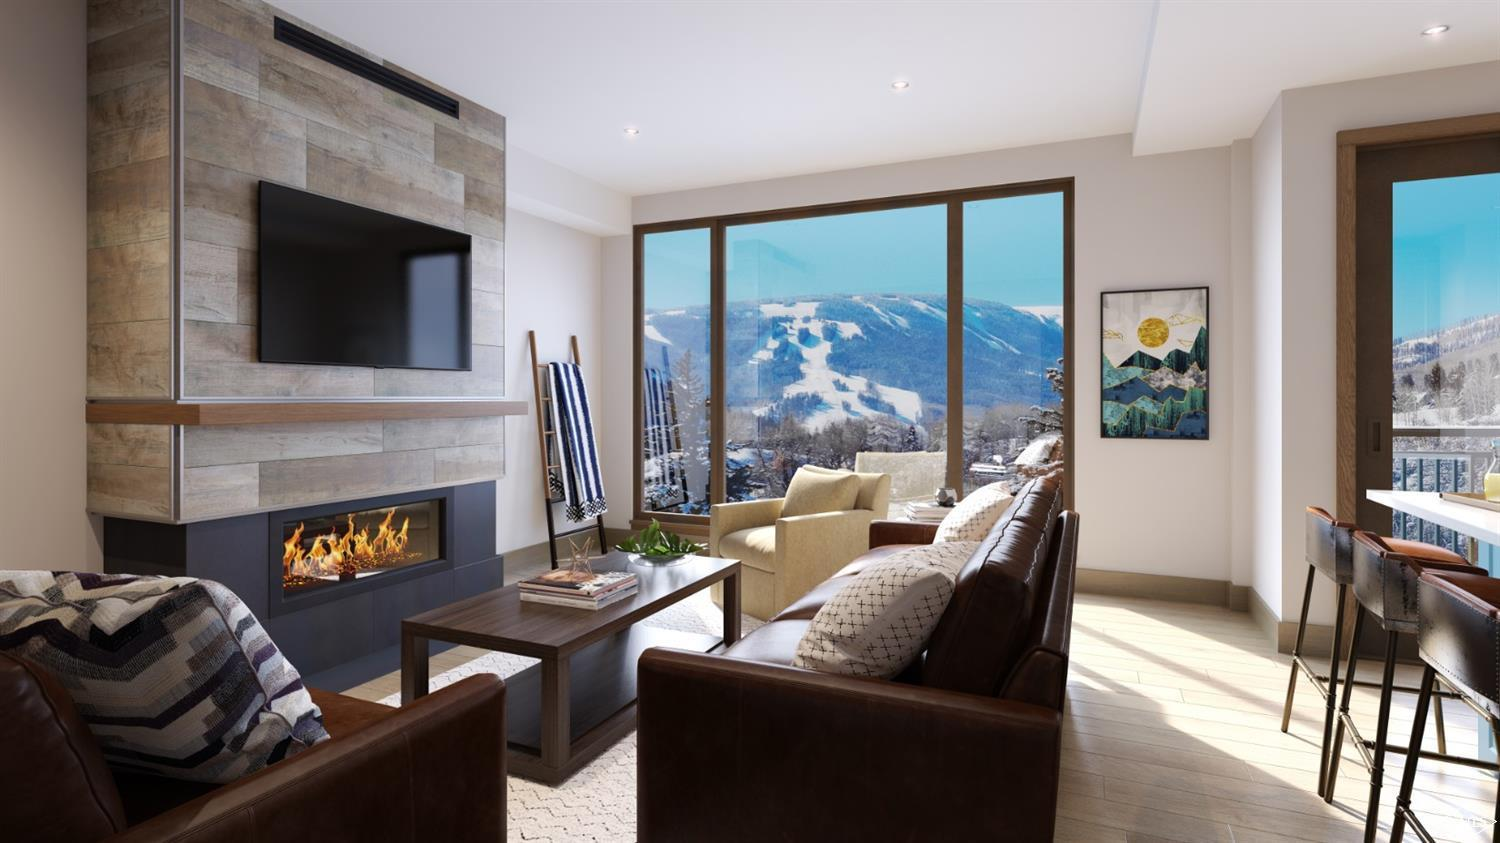 The limited collection of brand-new residences at Riverfront Lodge range from one- to four-bedrooms, each uniquely designed with open floor plans, areas to relax and a host of amenities that make life tranquil, seamless and convenient, in every way. Located on the Eagle River, the Lodge exudes timeless mountain charm in a truly unbeatable location. Owners enjoy unprecedented access to Beaver Creek ski slopes and premium amenities at the neighboring Westin. Explore life at Riverfront Village.